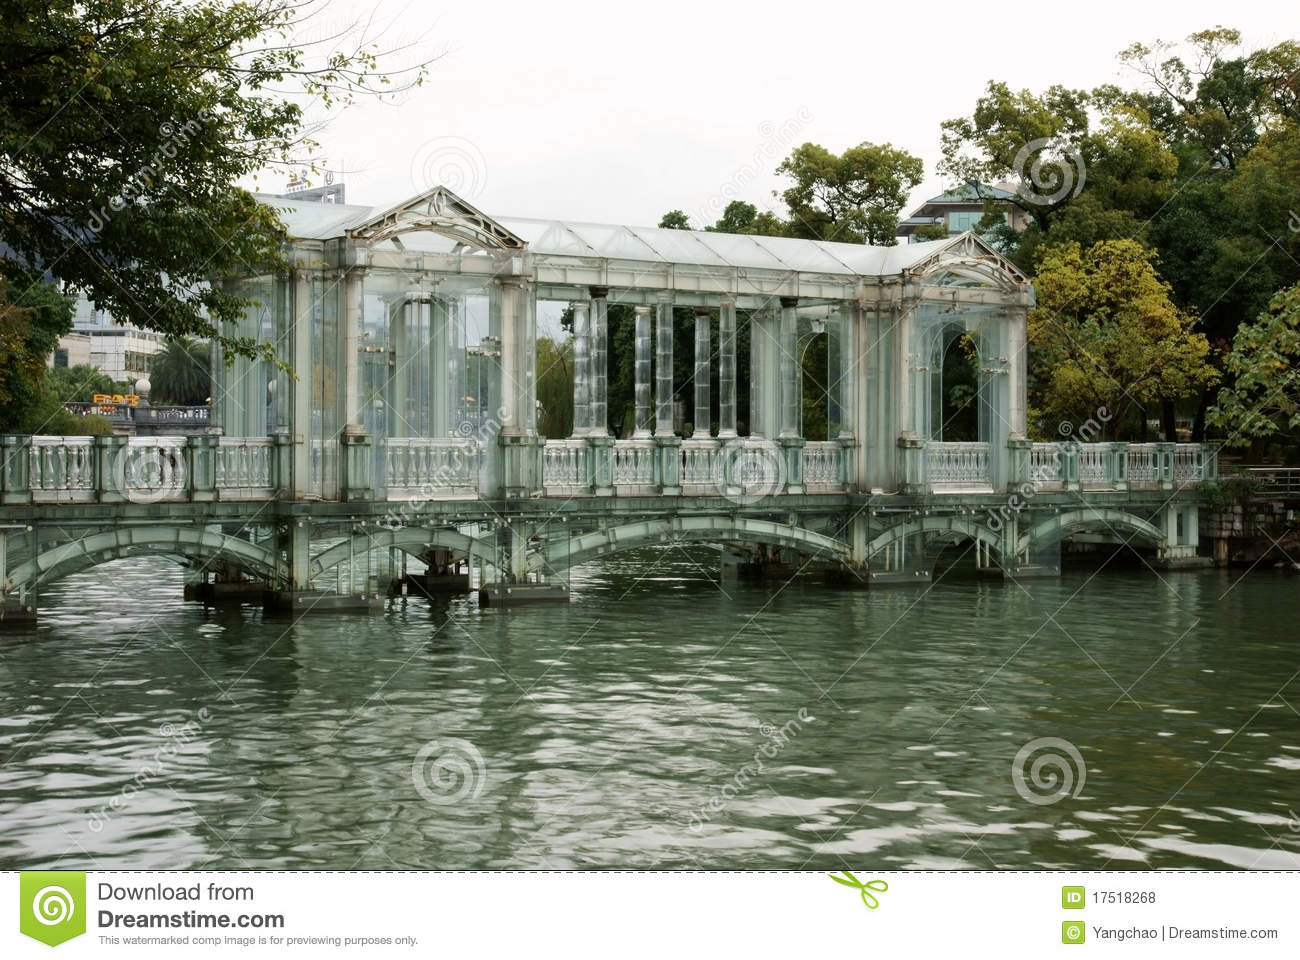 Glass bridge in china clipart.